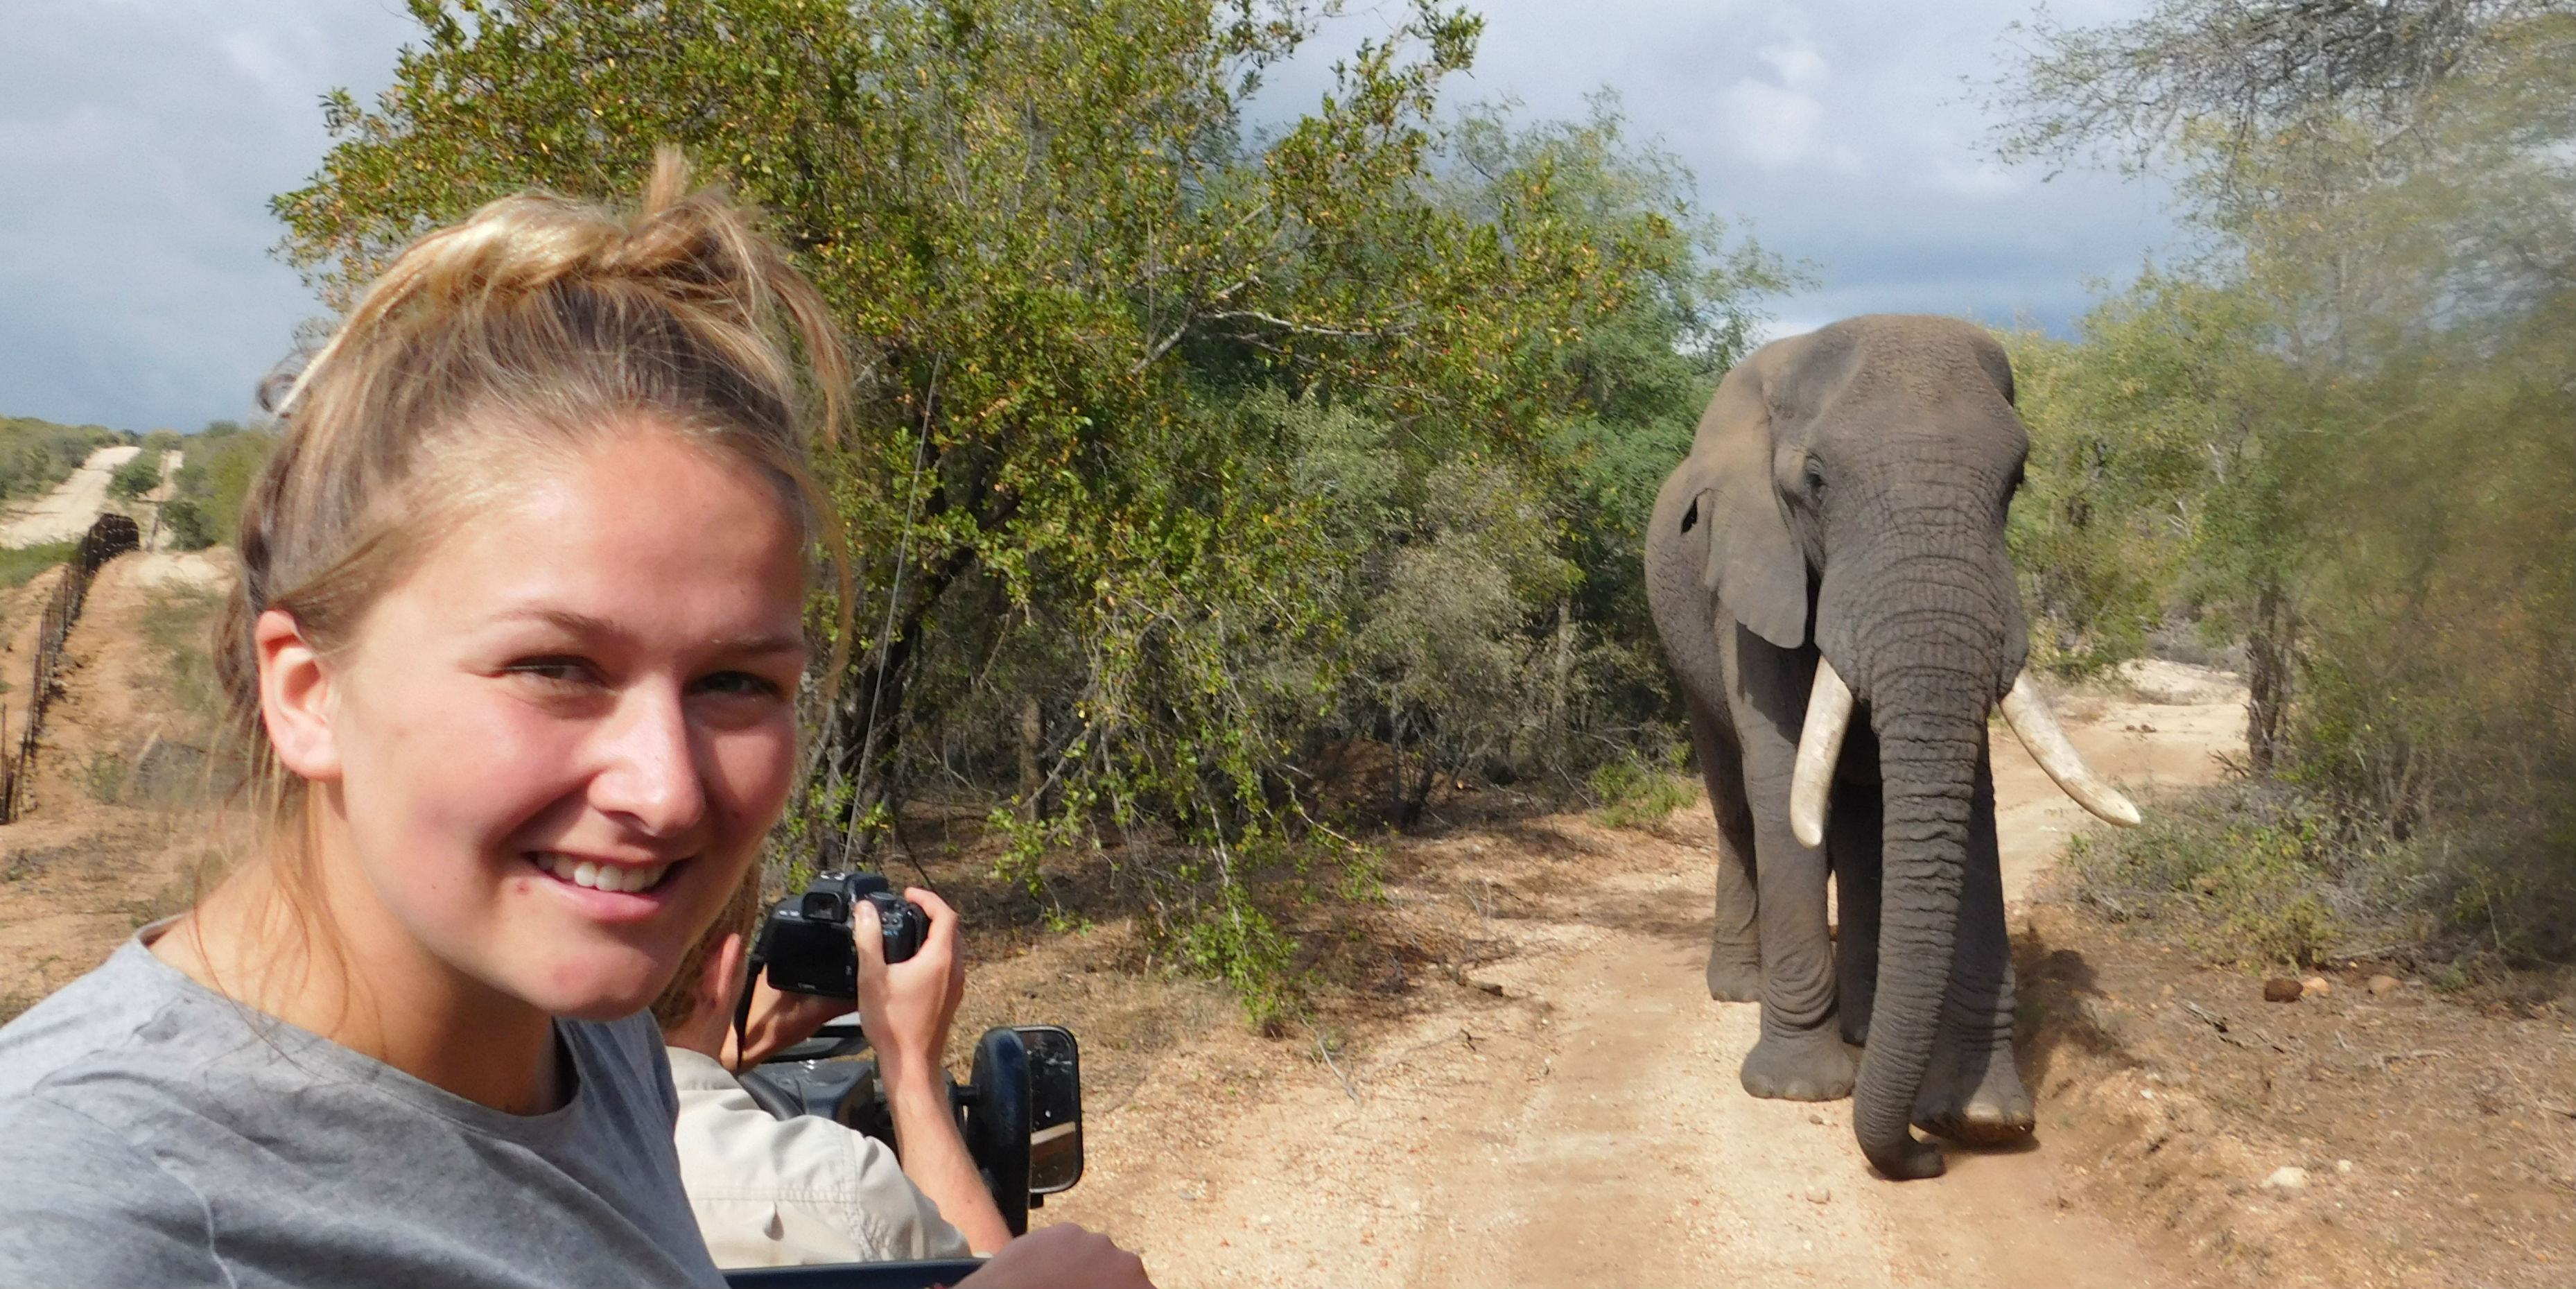 volunteer with animals in africa